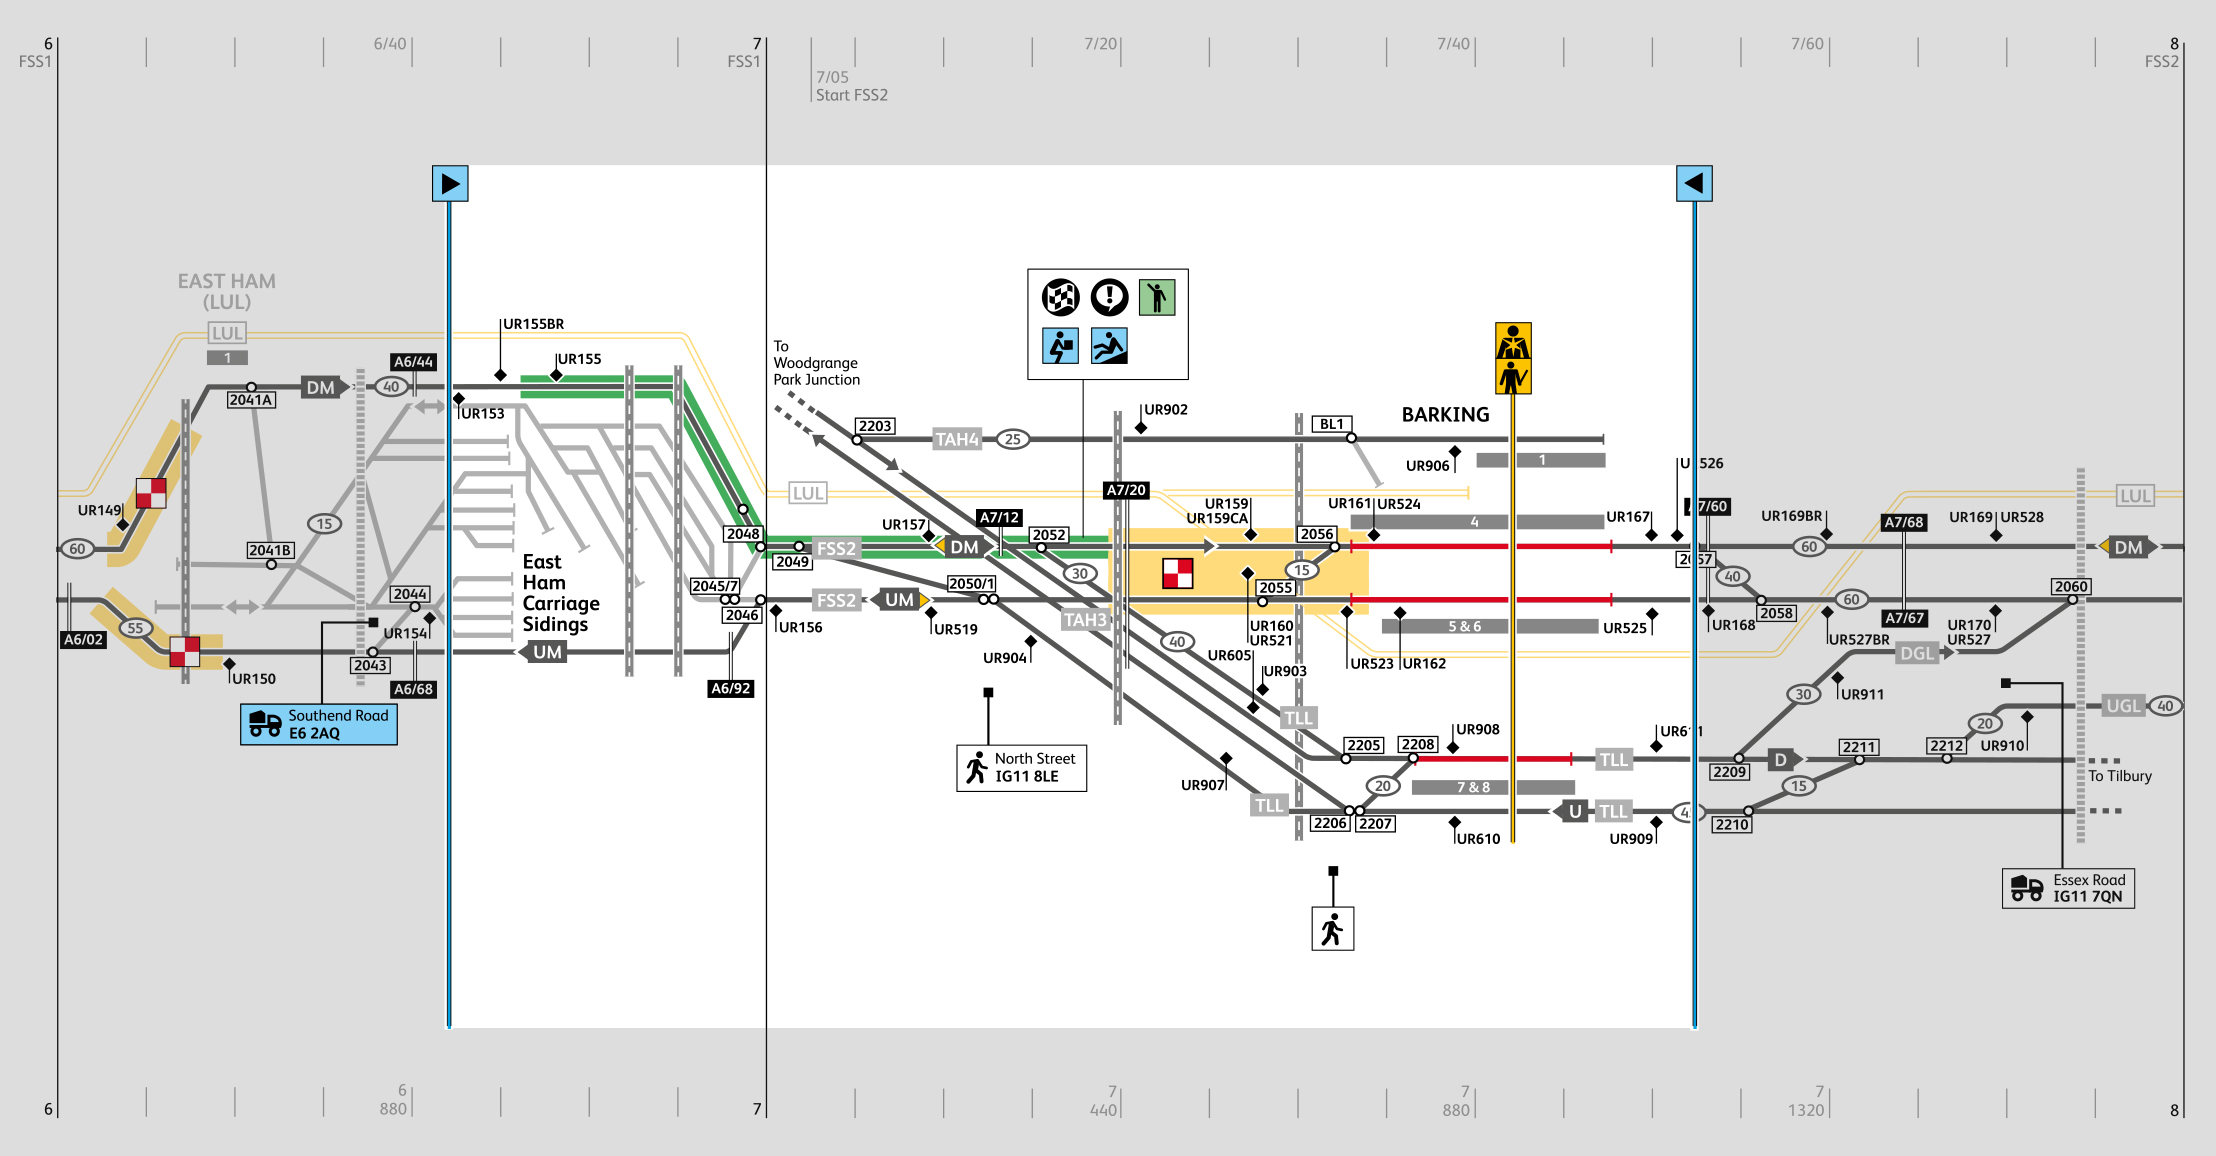 East Anglia, Network Rail, Orbis, map, schematic, visual language, design